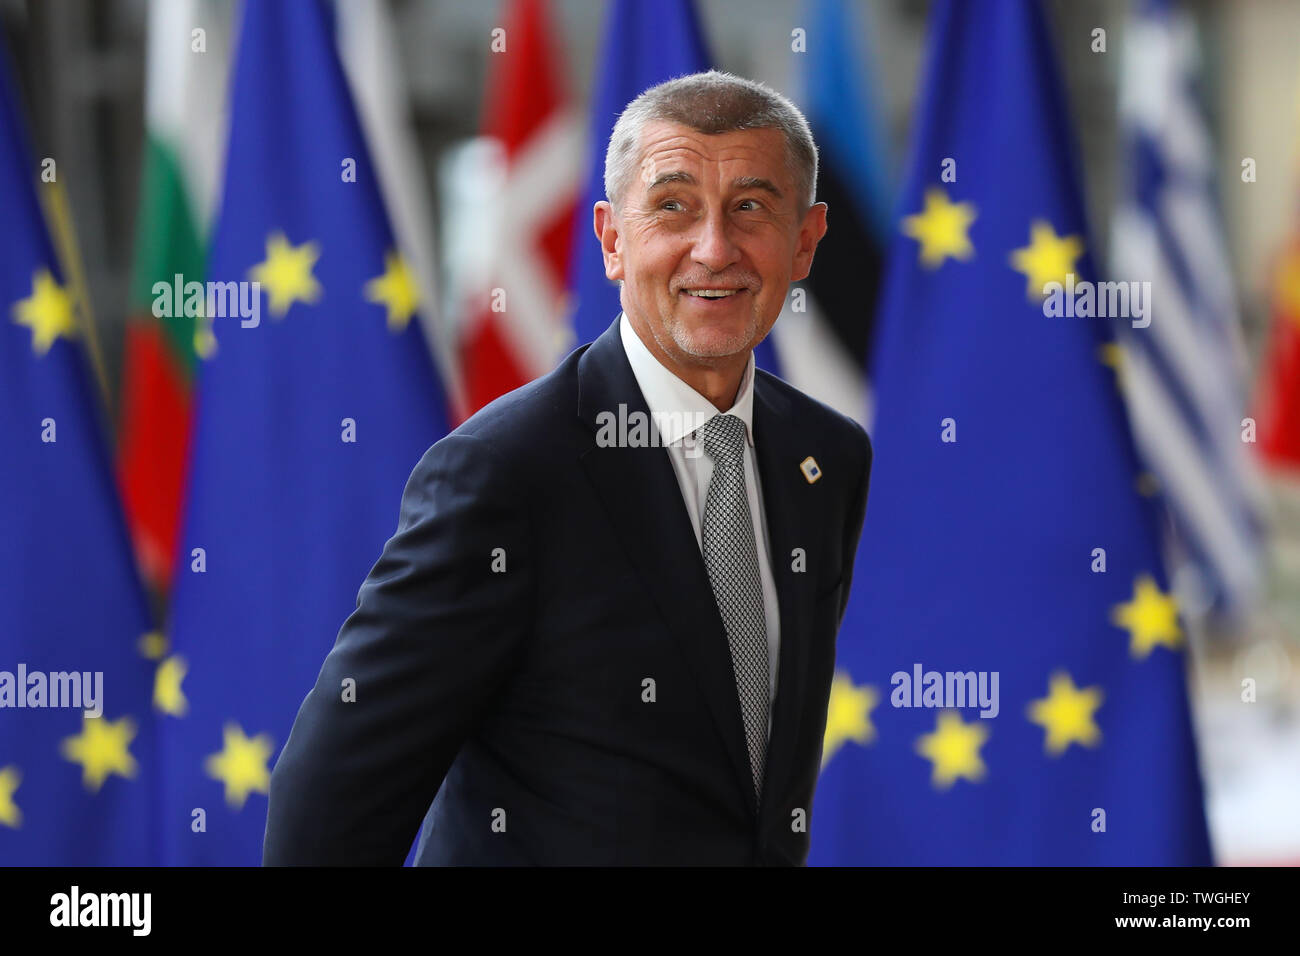 Brussels, Belgium. 20th June, 2019. Czech Prime Minister Andrej Babis arrives for the EU summer summit in Brussels, Belgium, June 20, 2019. Credit: Zhang Cheng/Xinhua/Alamy Live News - Stock Image